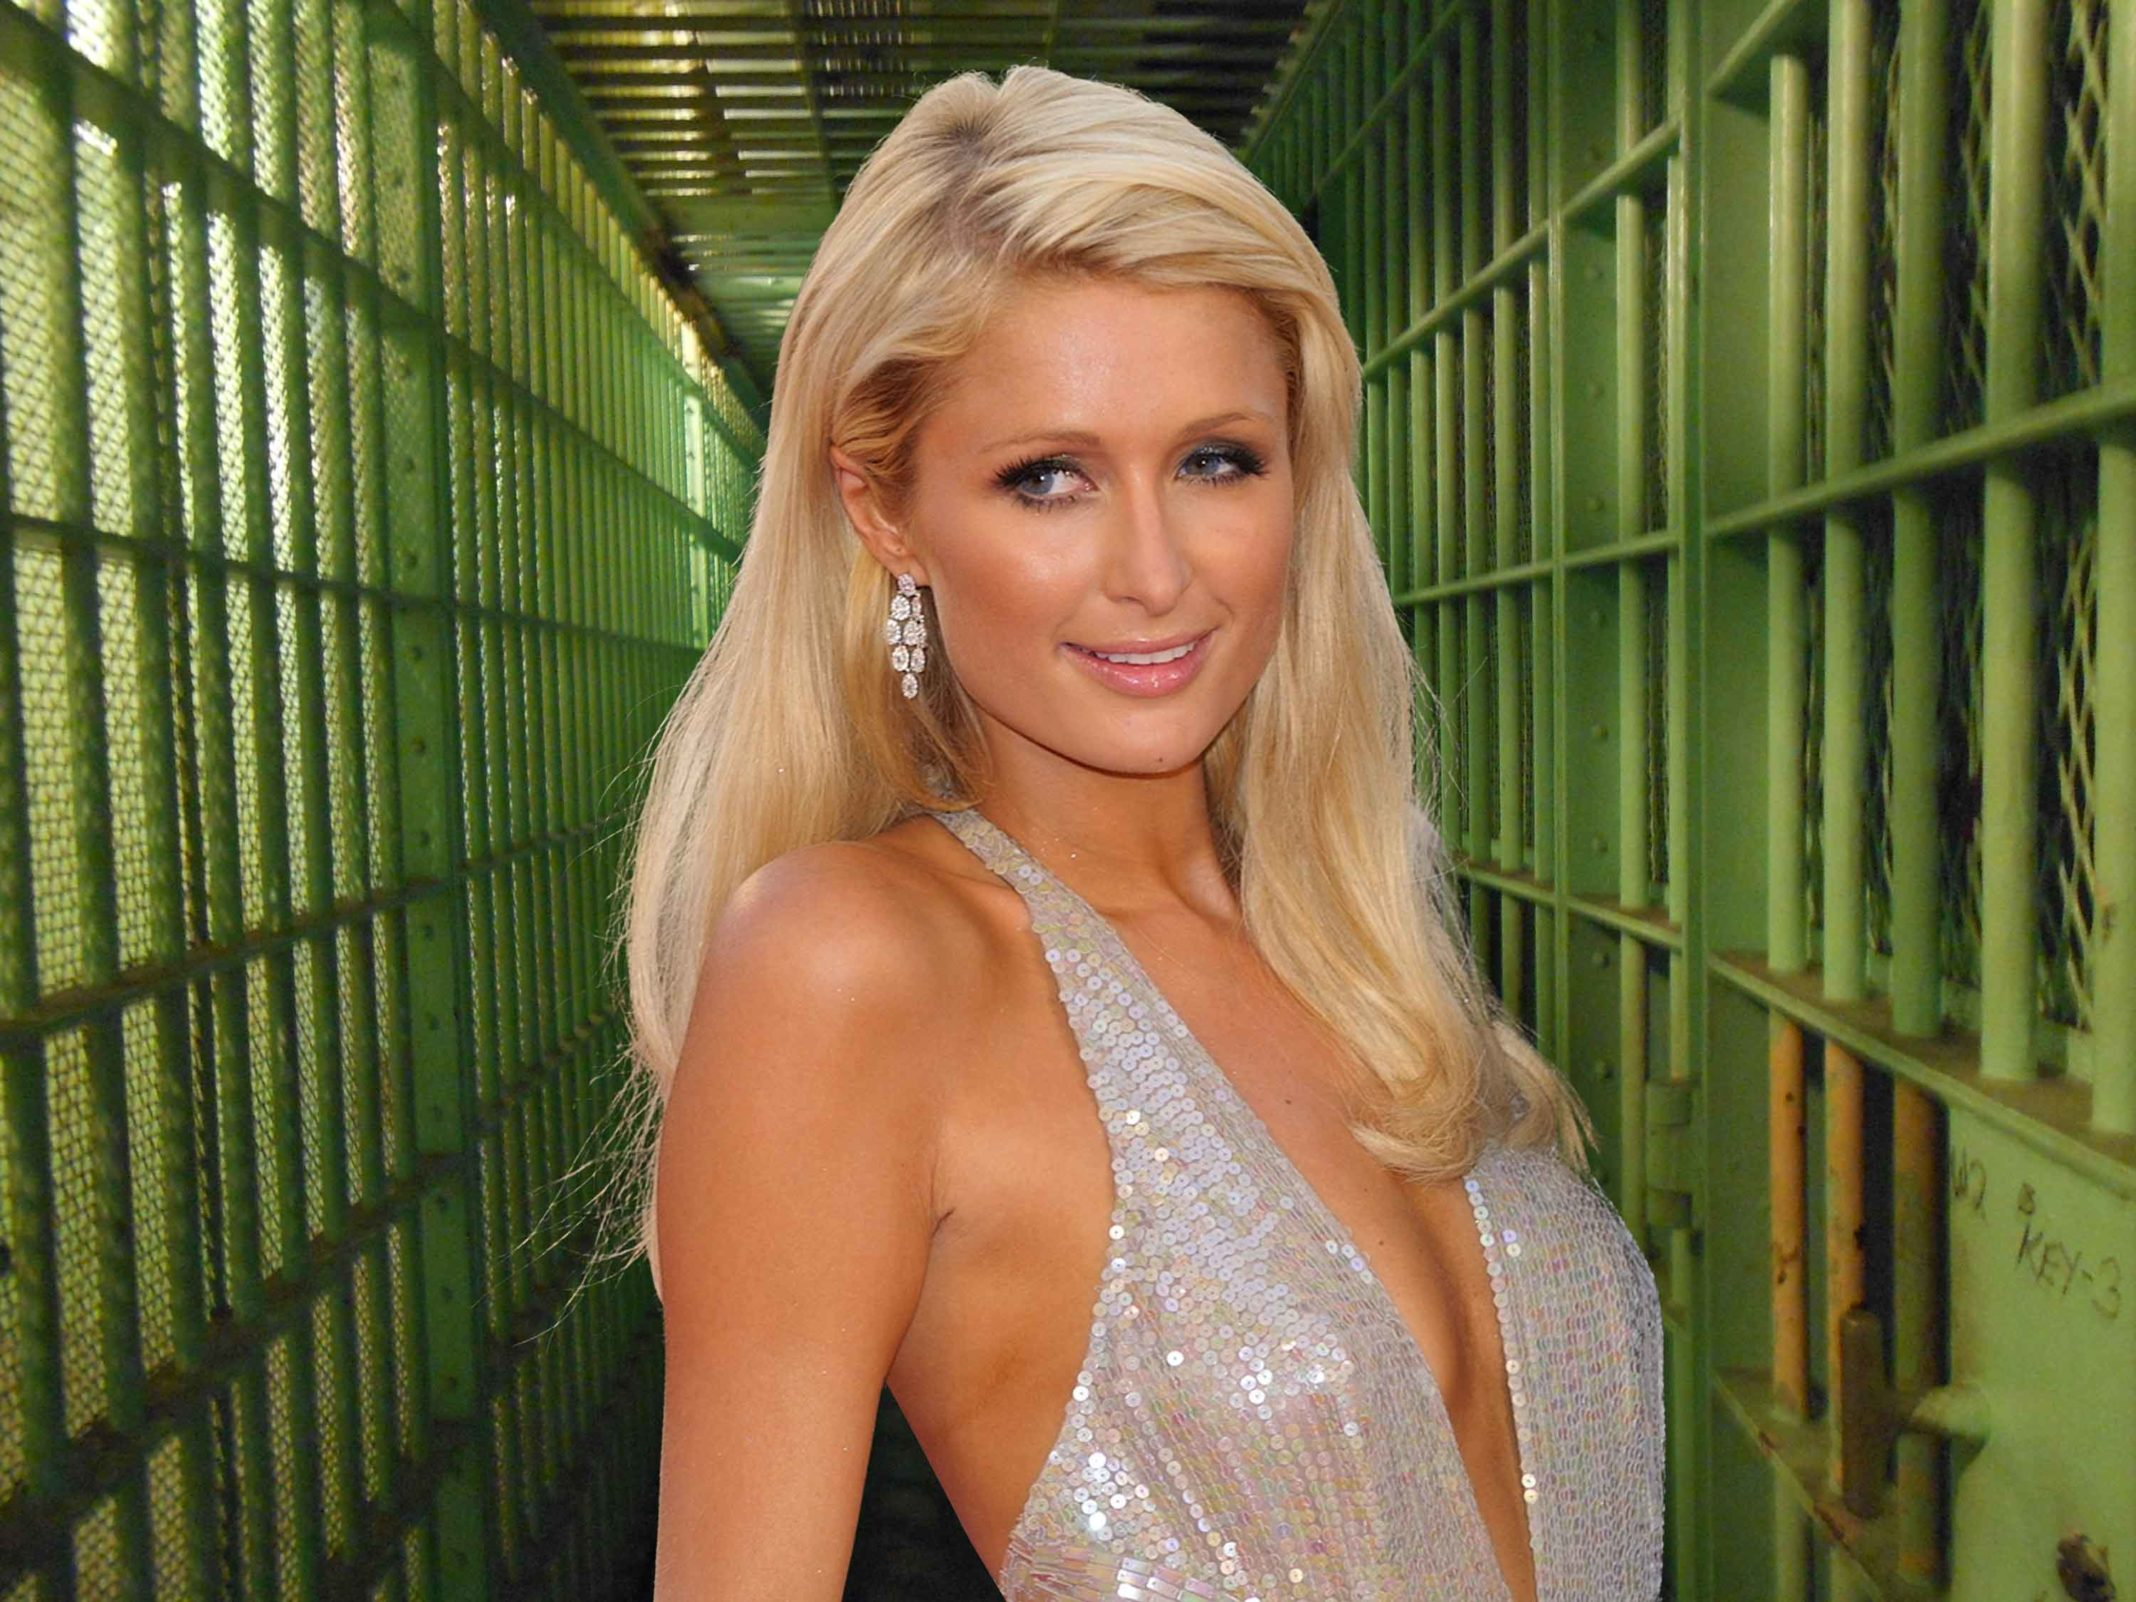 Paris Hilton Says She's Too Hot For Jail